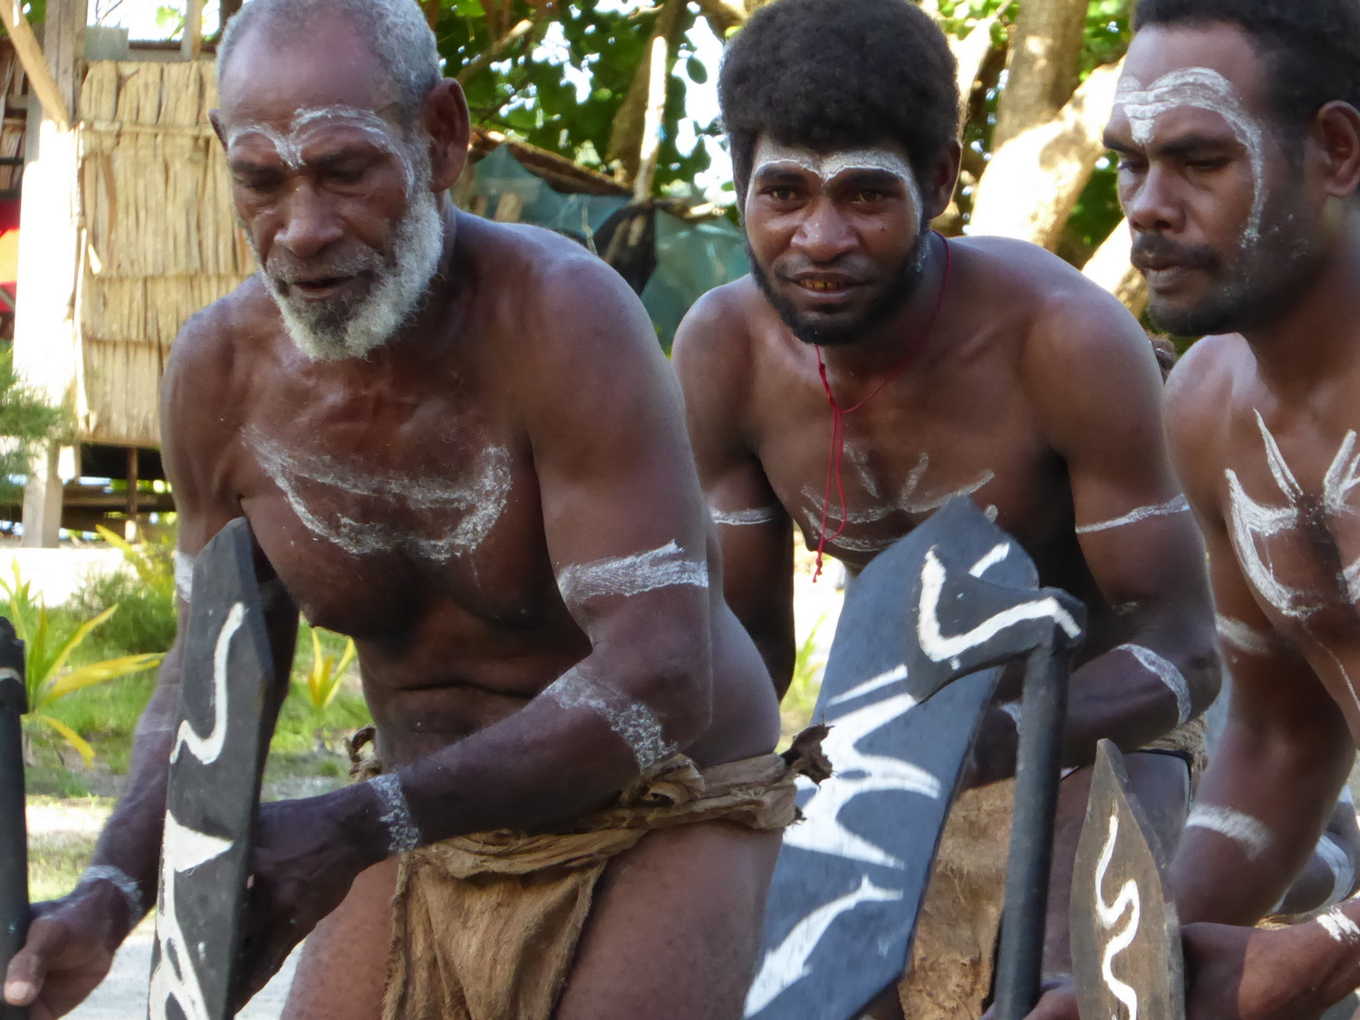 Solomon Islanders were once headhunters